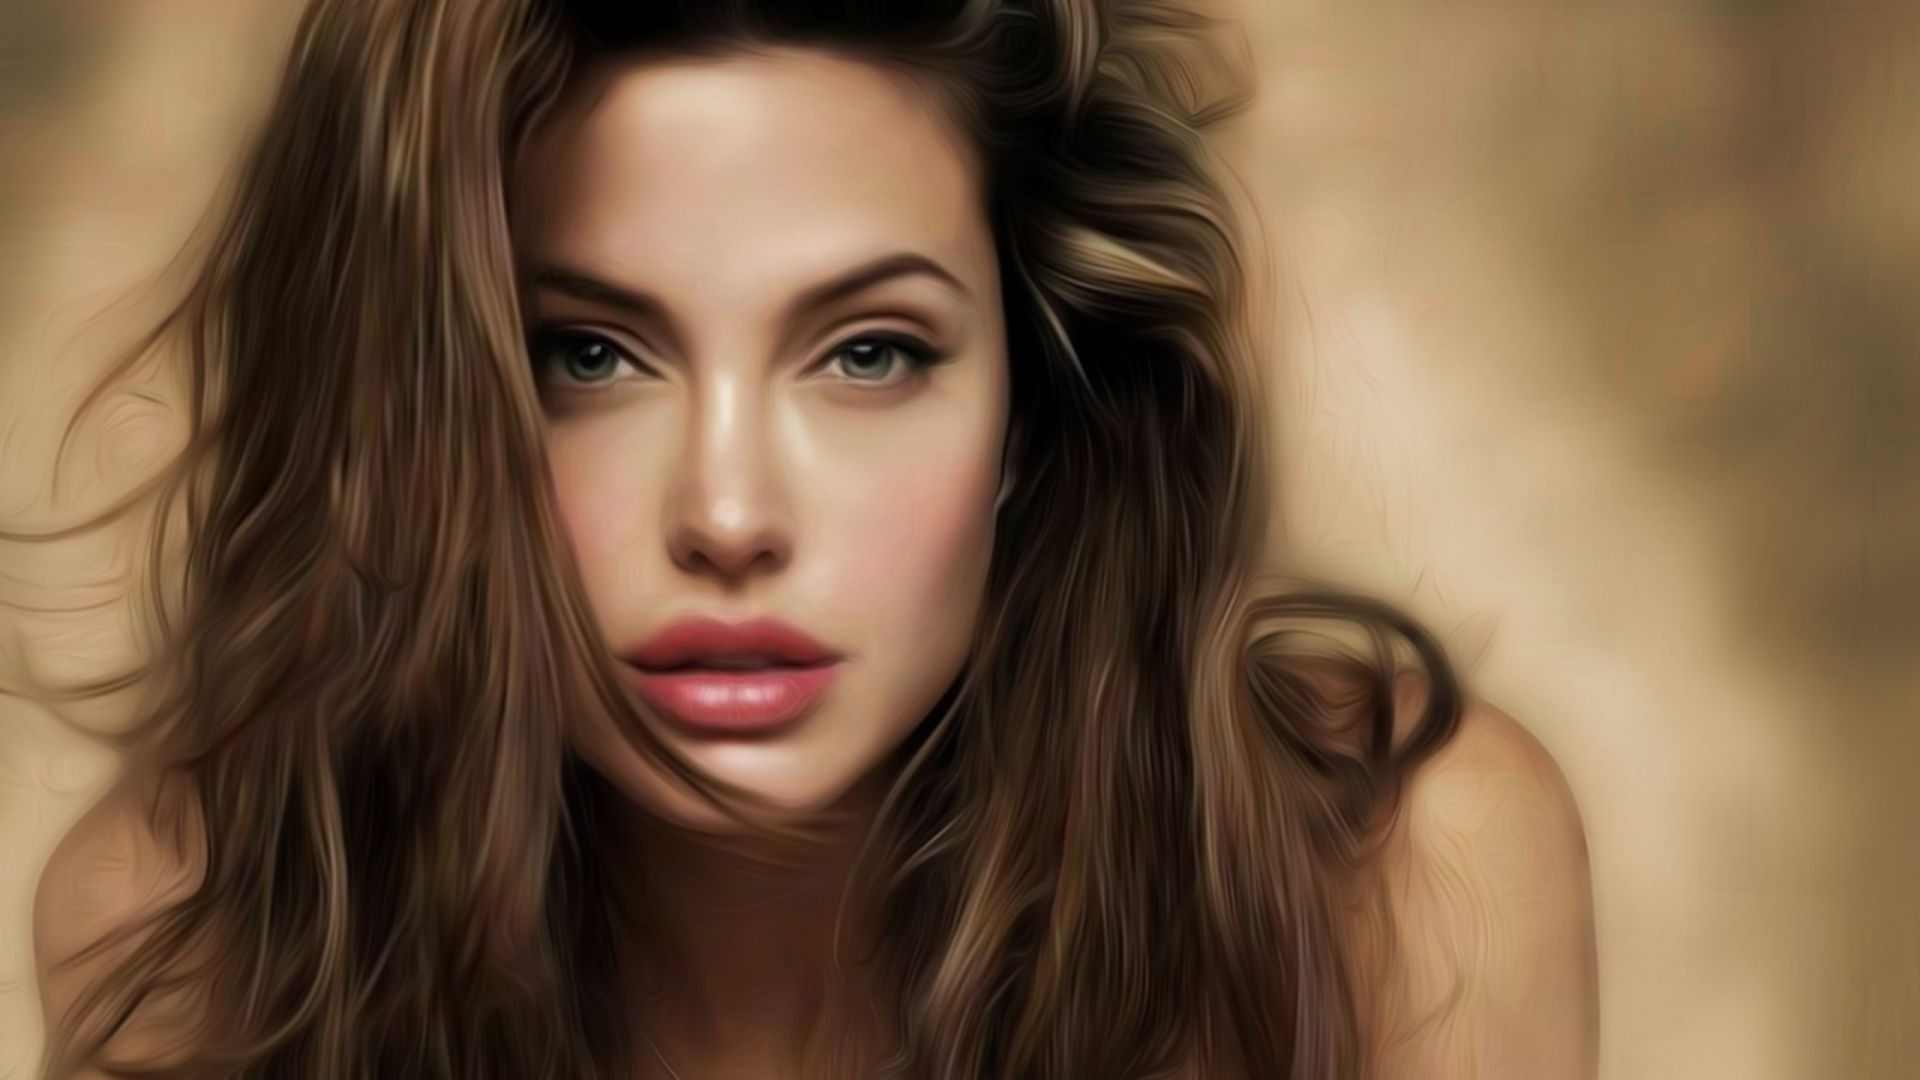 Hollywood actress hd wallpapers top free hollywood - Hollywood actress full hd images ...